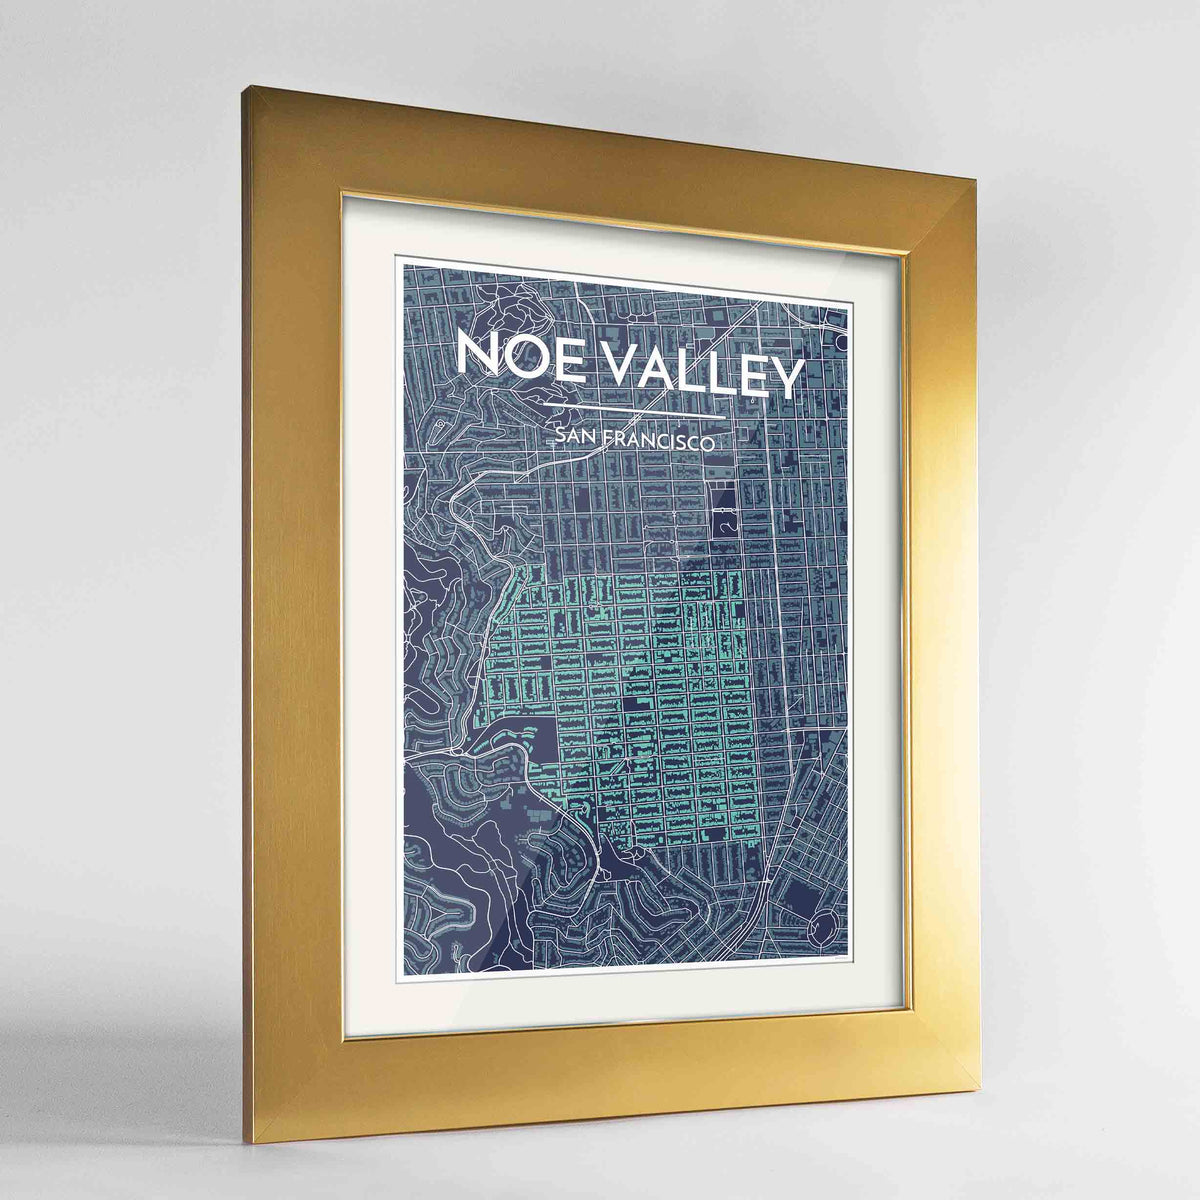 "Framed Noe Valley, San Francisco Map Art 24x36"" Gold frame Point Two Design Group"